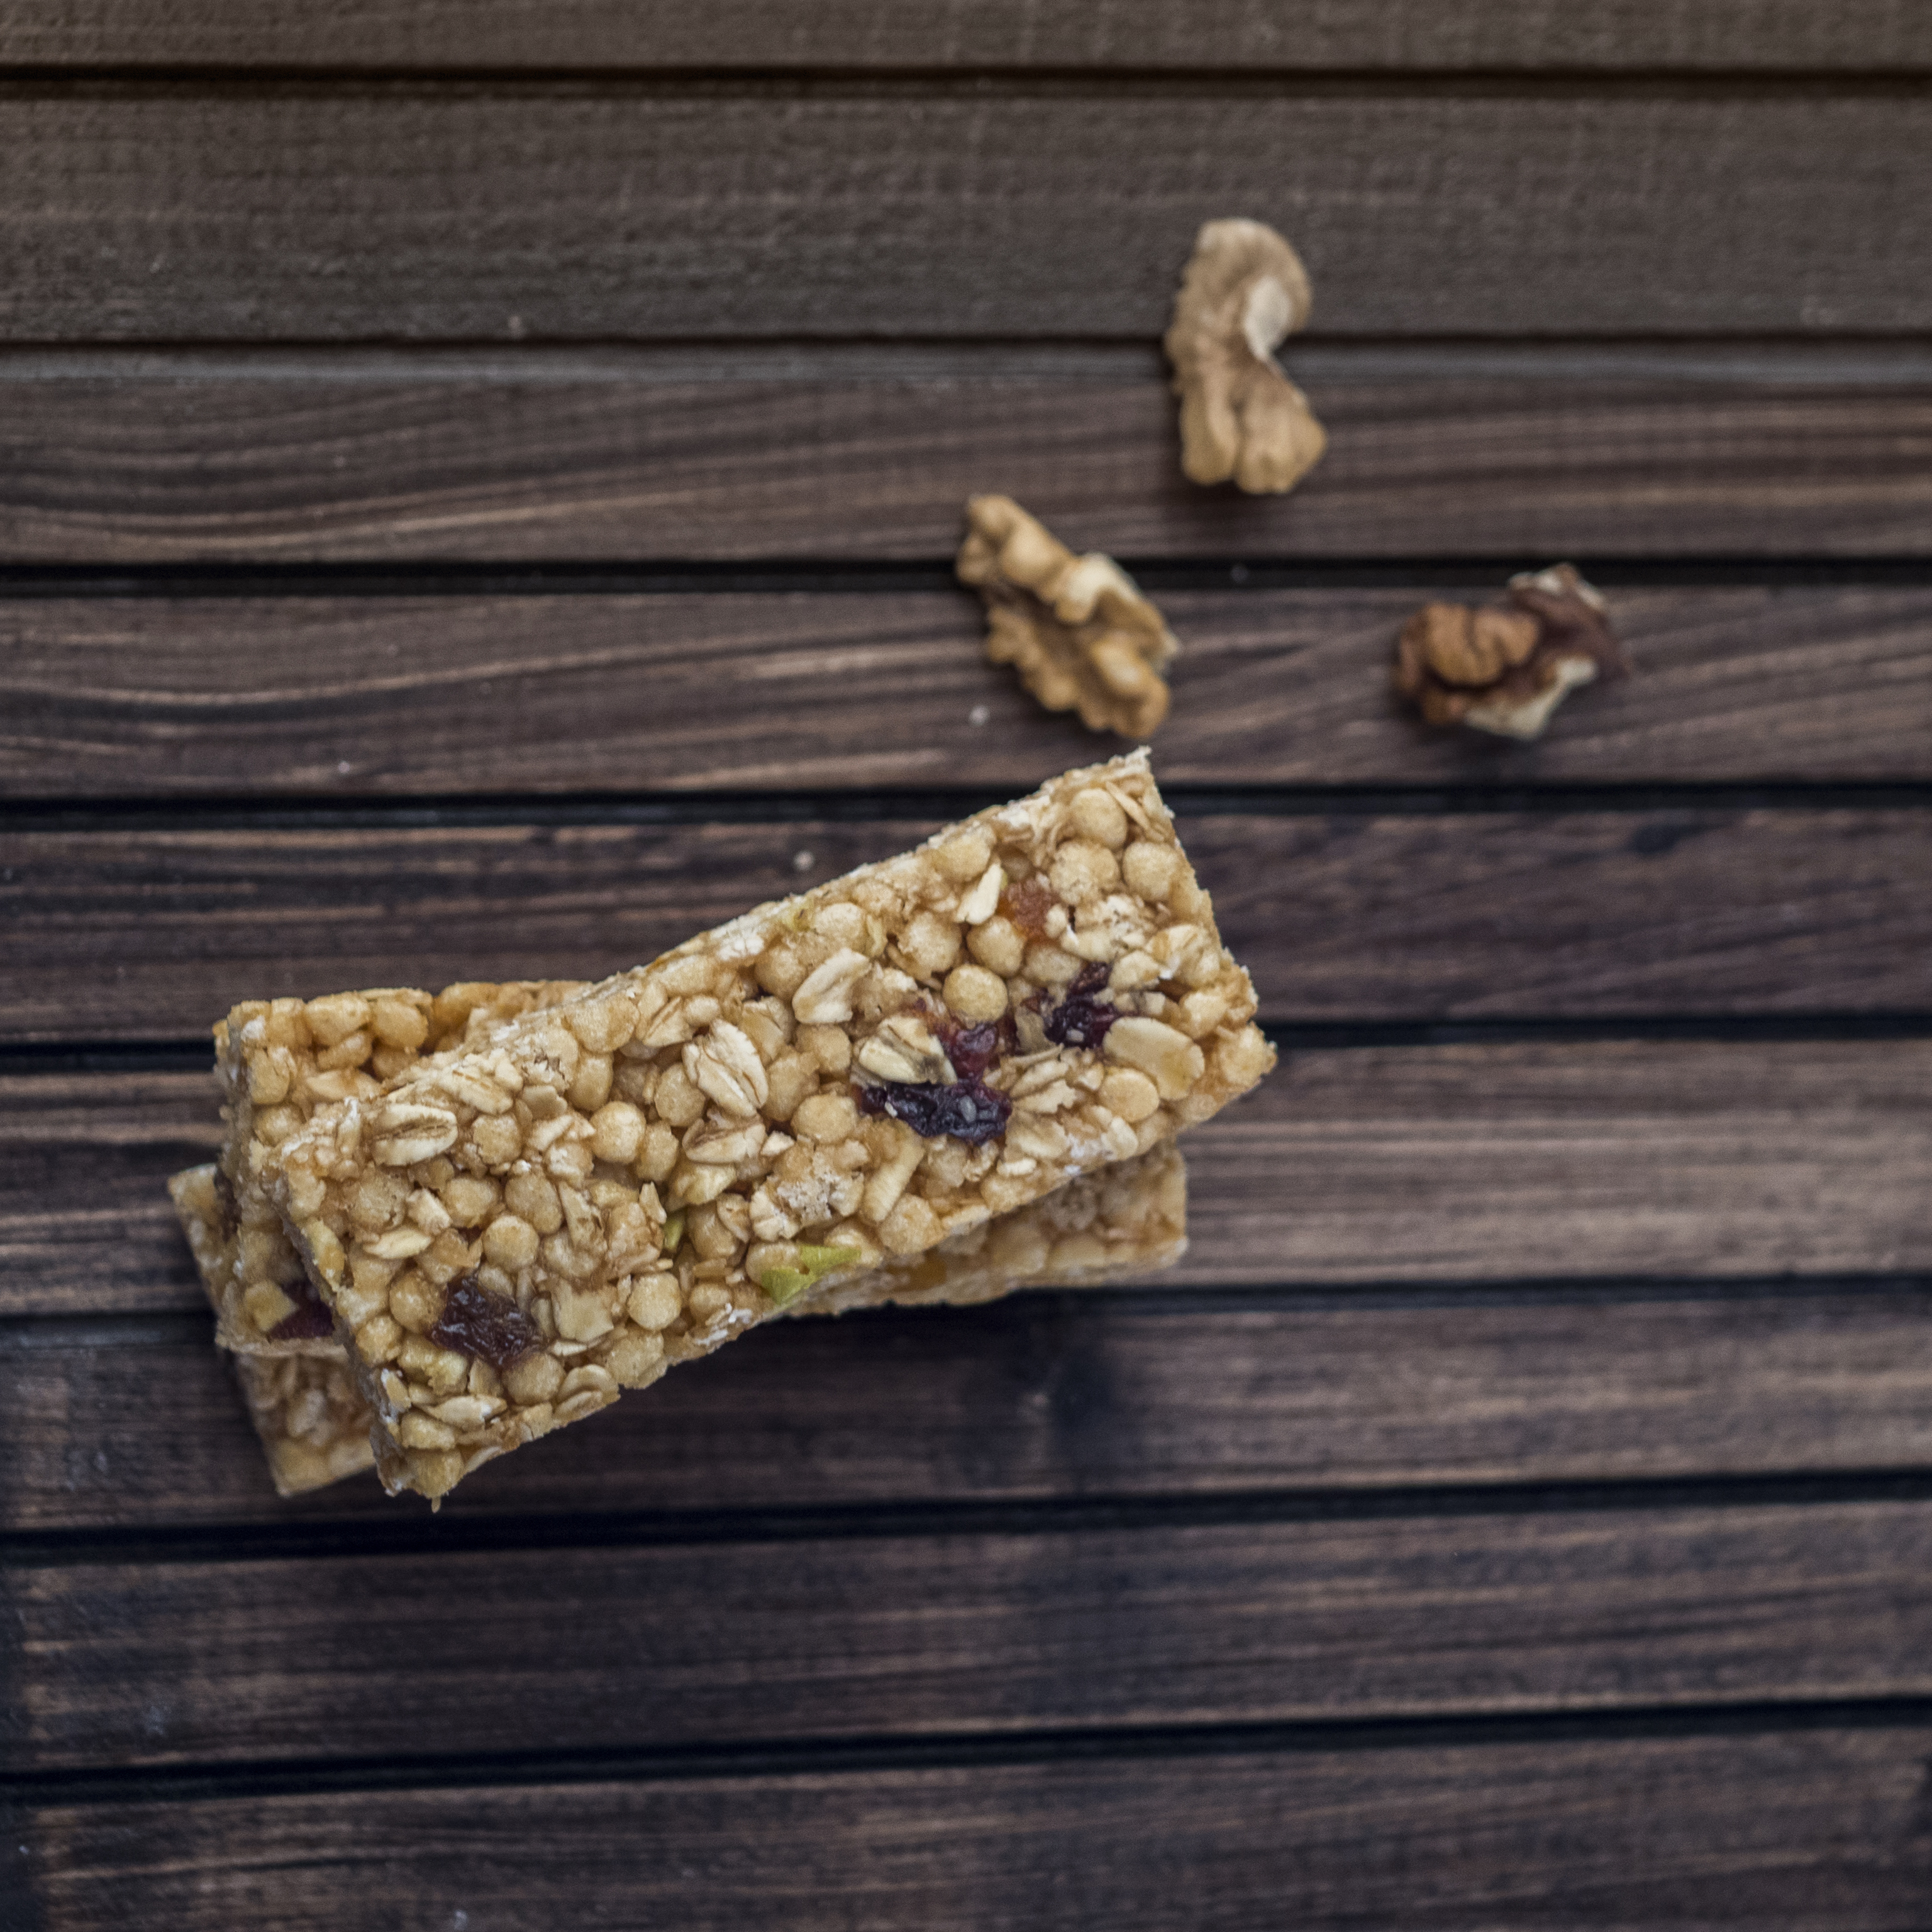 Granola Bar | 15 Popular Snack Foods That Are Actually Vegan Approved